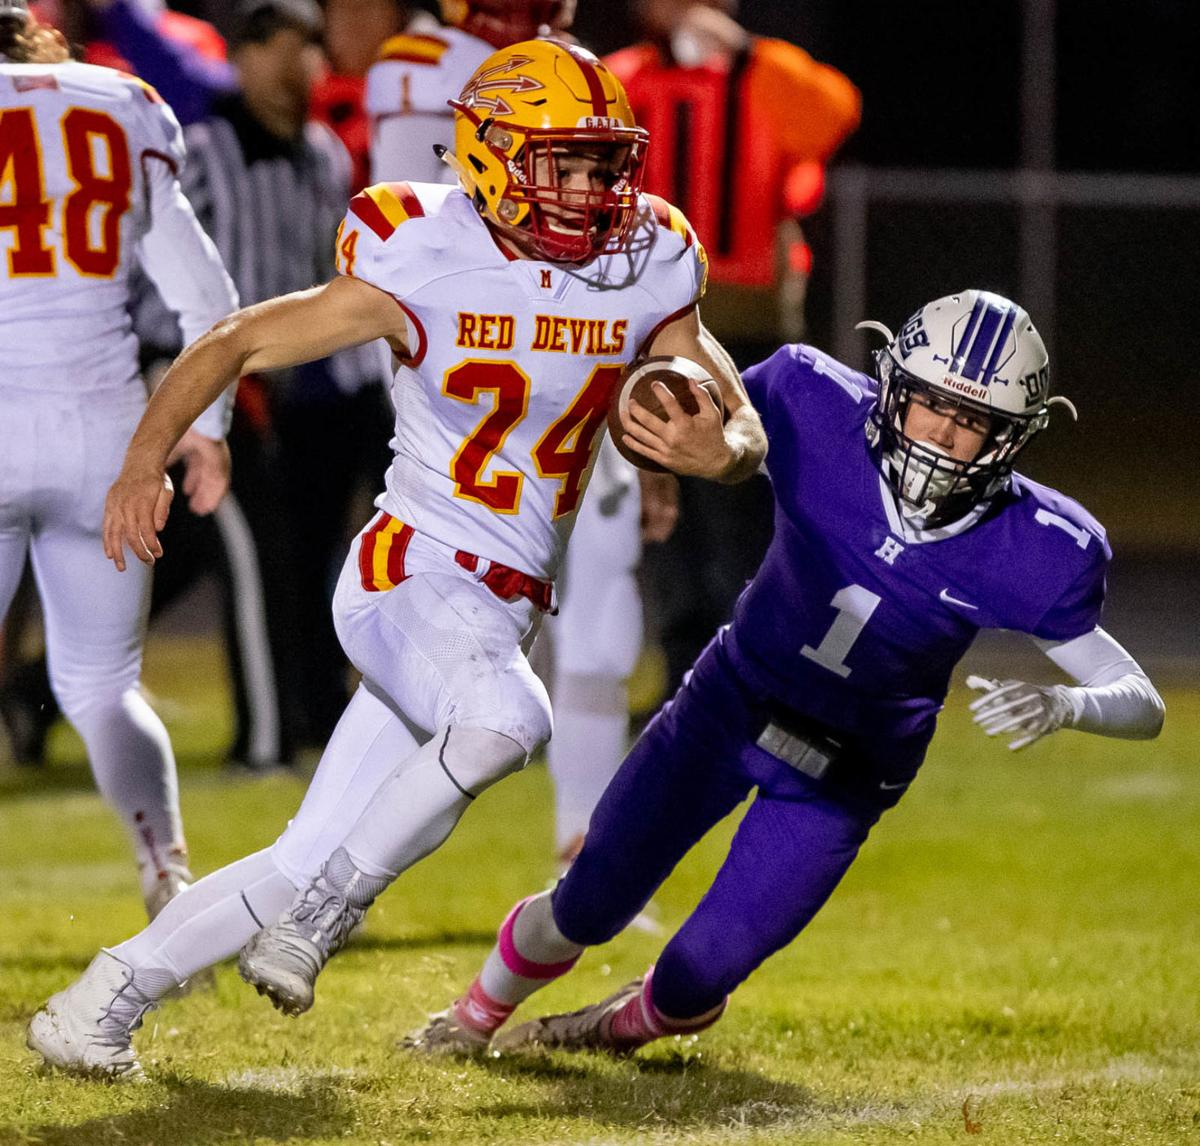 Murphysboro Red Devils at Harrisburg Bulldogs